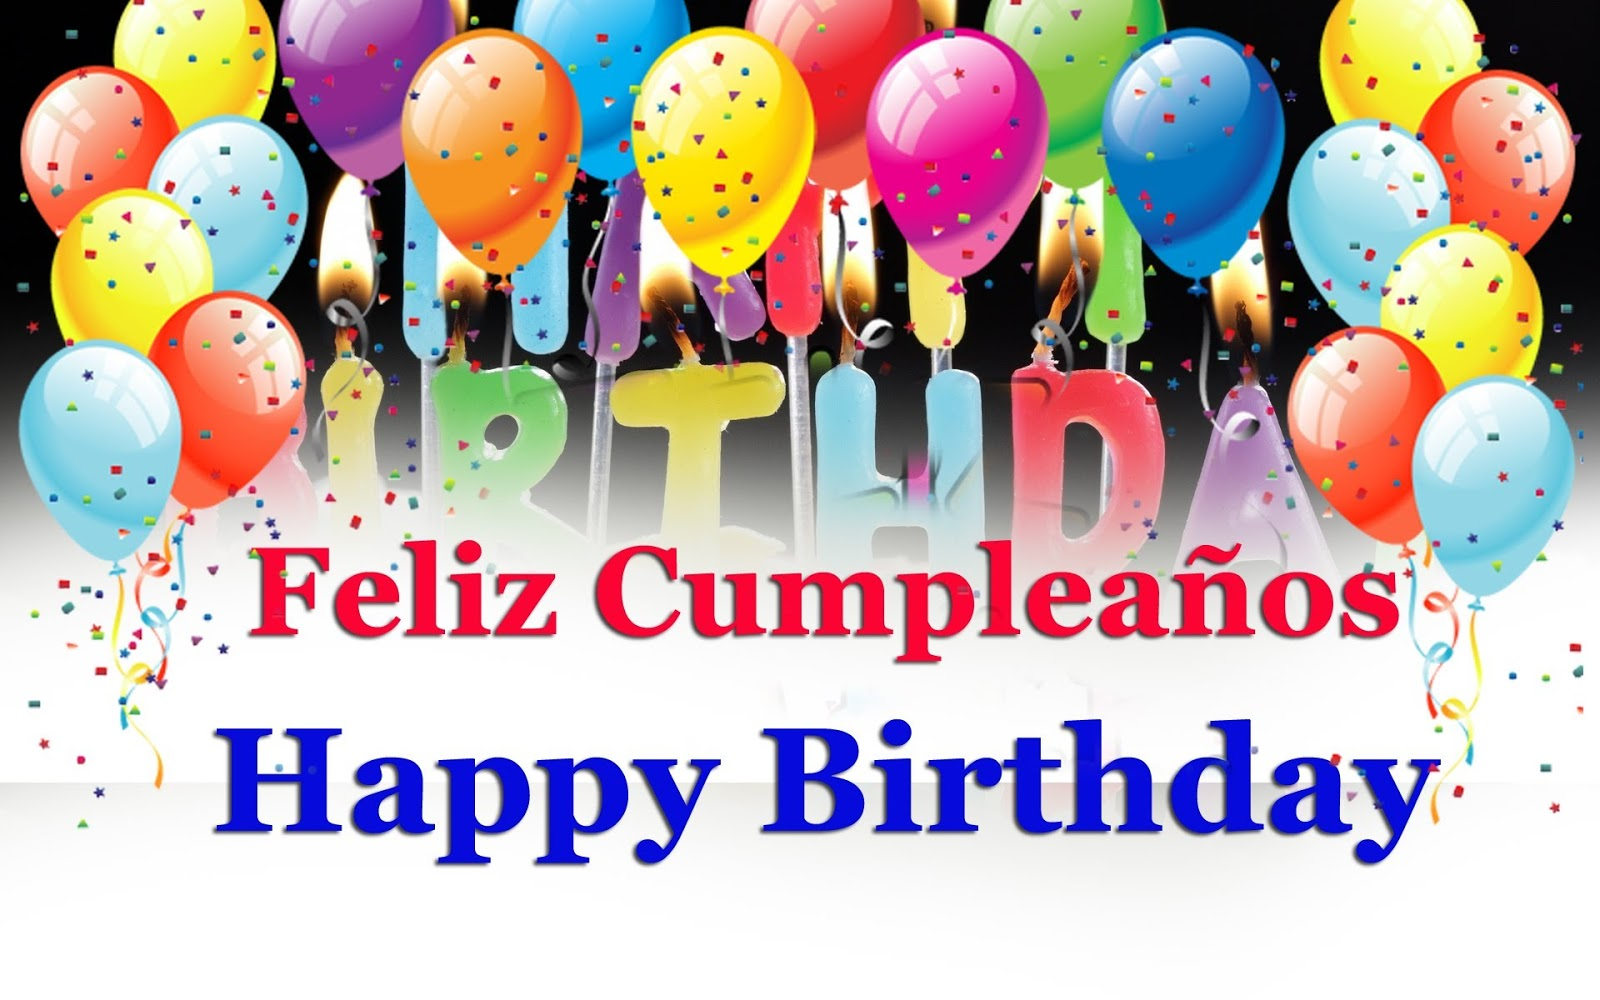 Feliz Cumpleanos Happy Birthday in Spanish Images